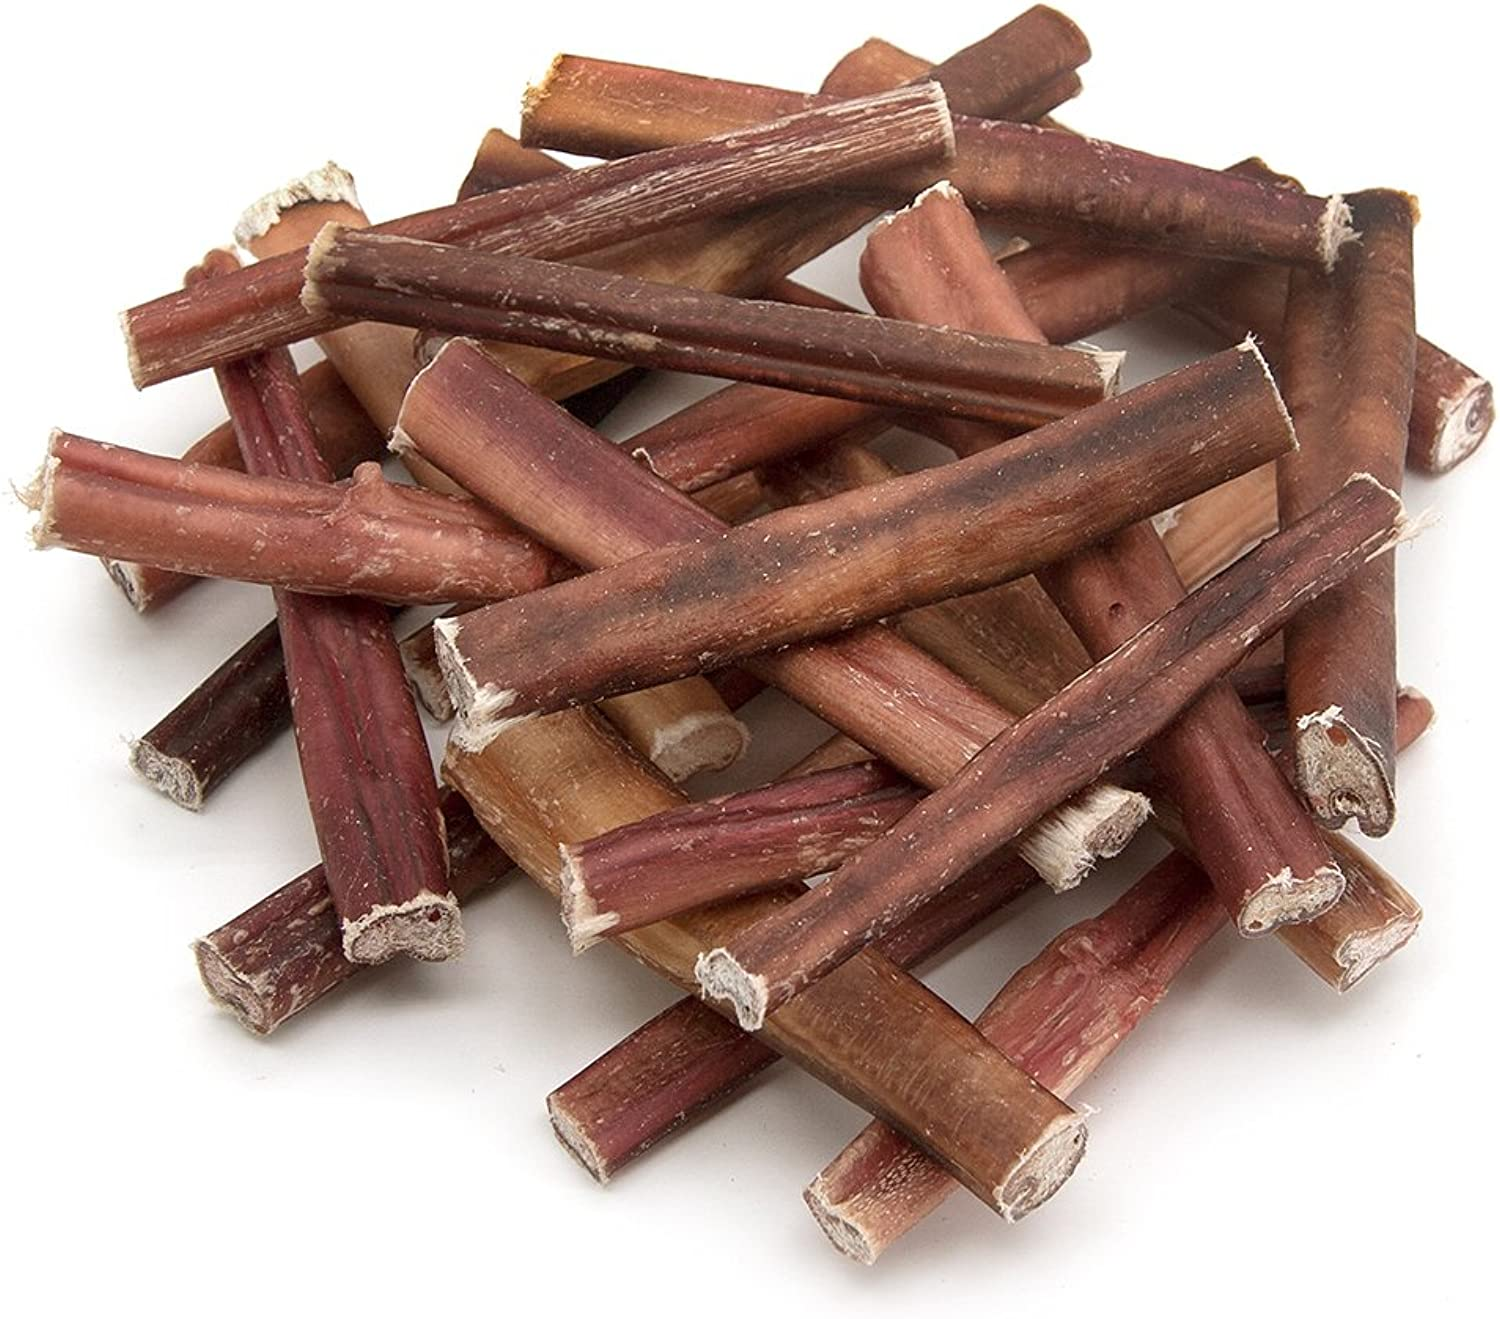 Best Pet Supplies BpsFDA and USDA Certified Thick Plain Bully Sticks6Inch, 25Piece Pack, Odor Free